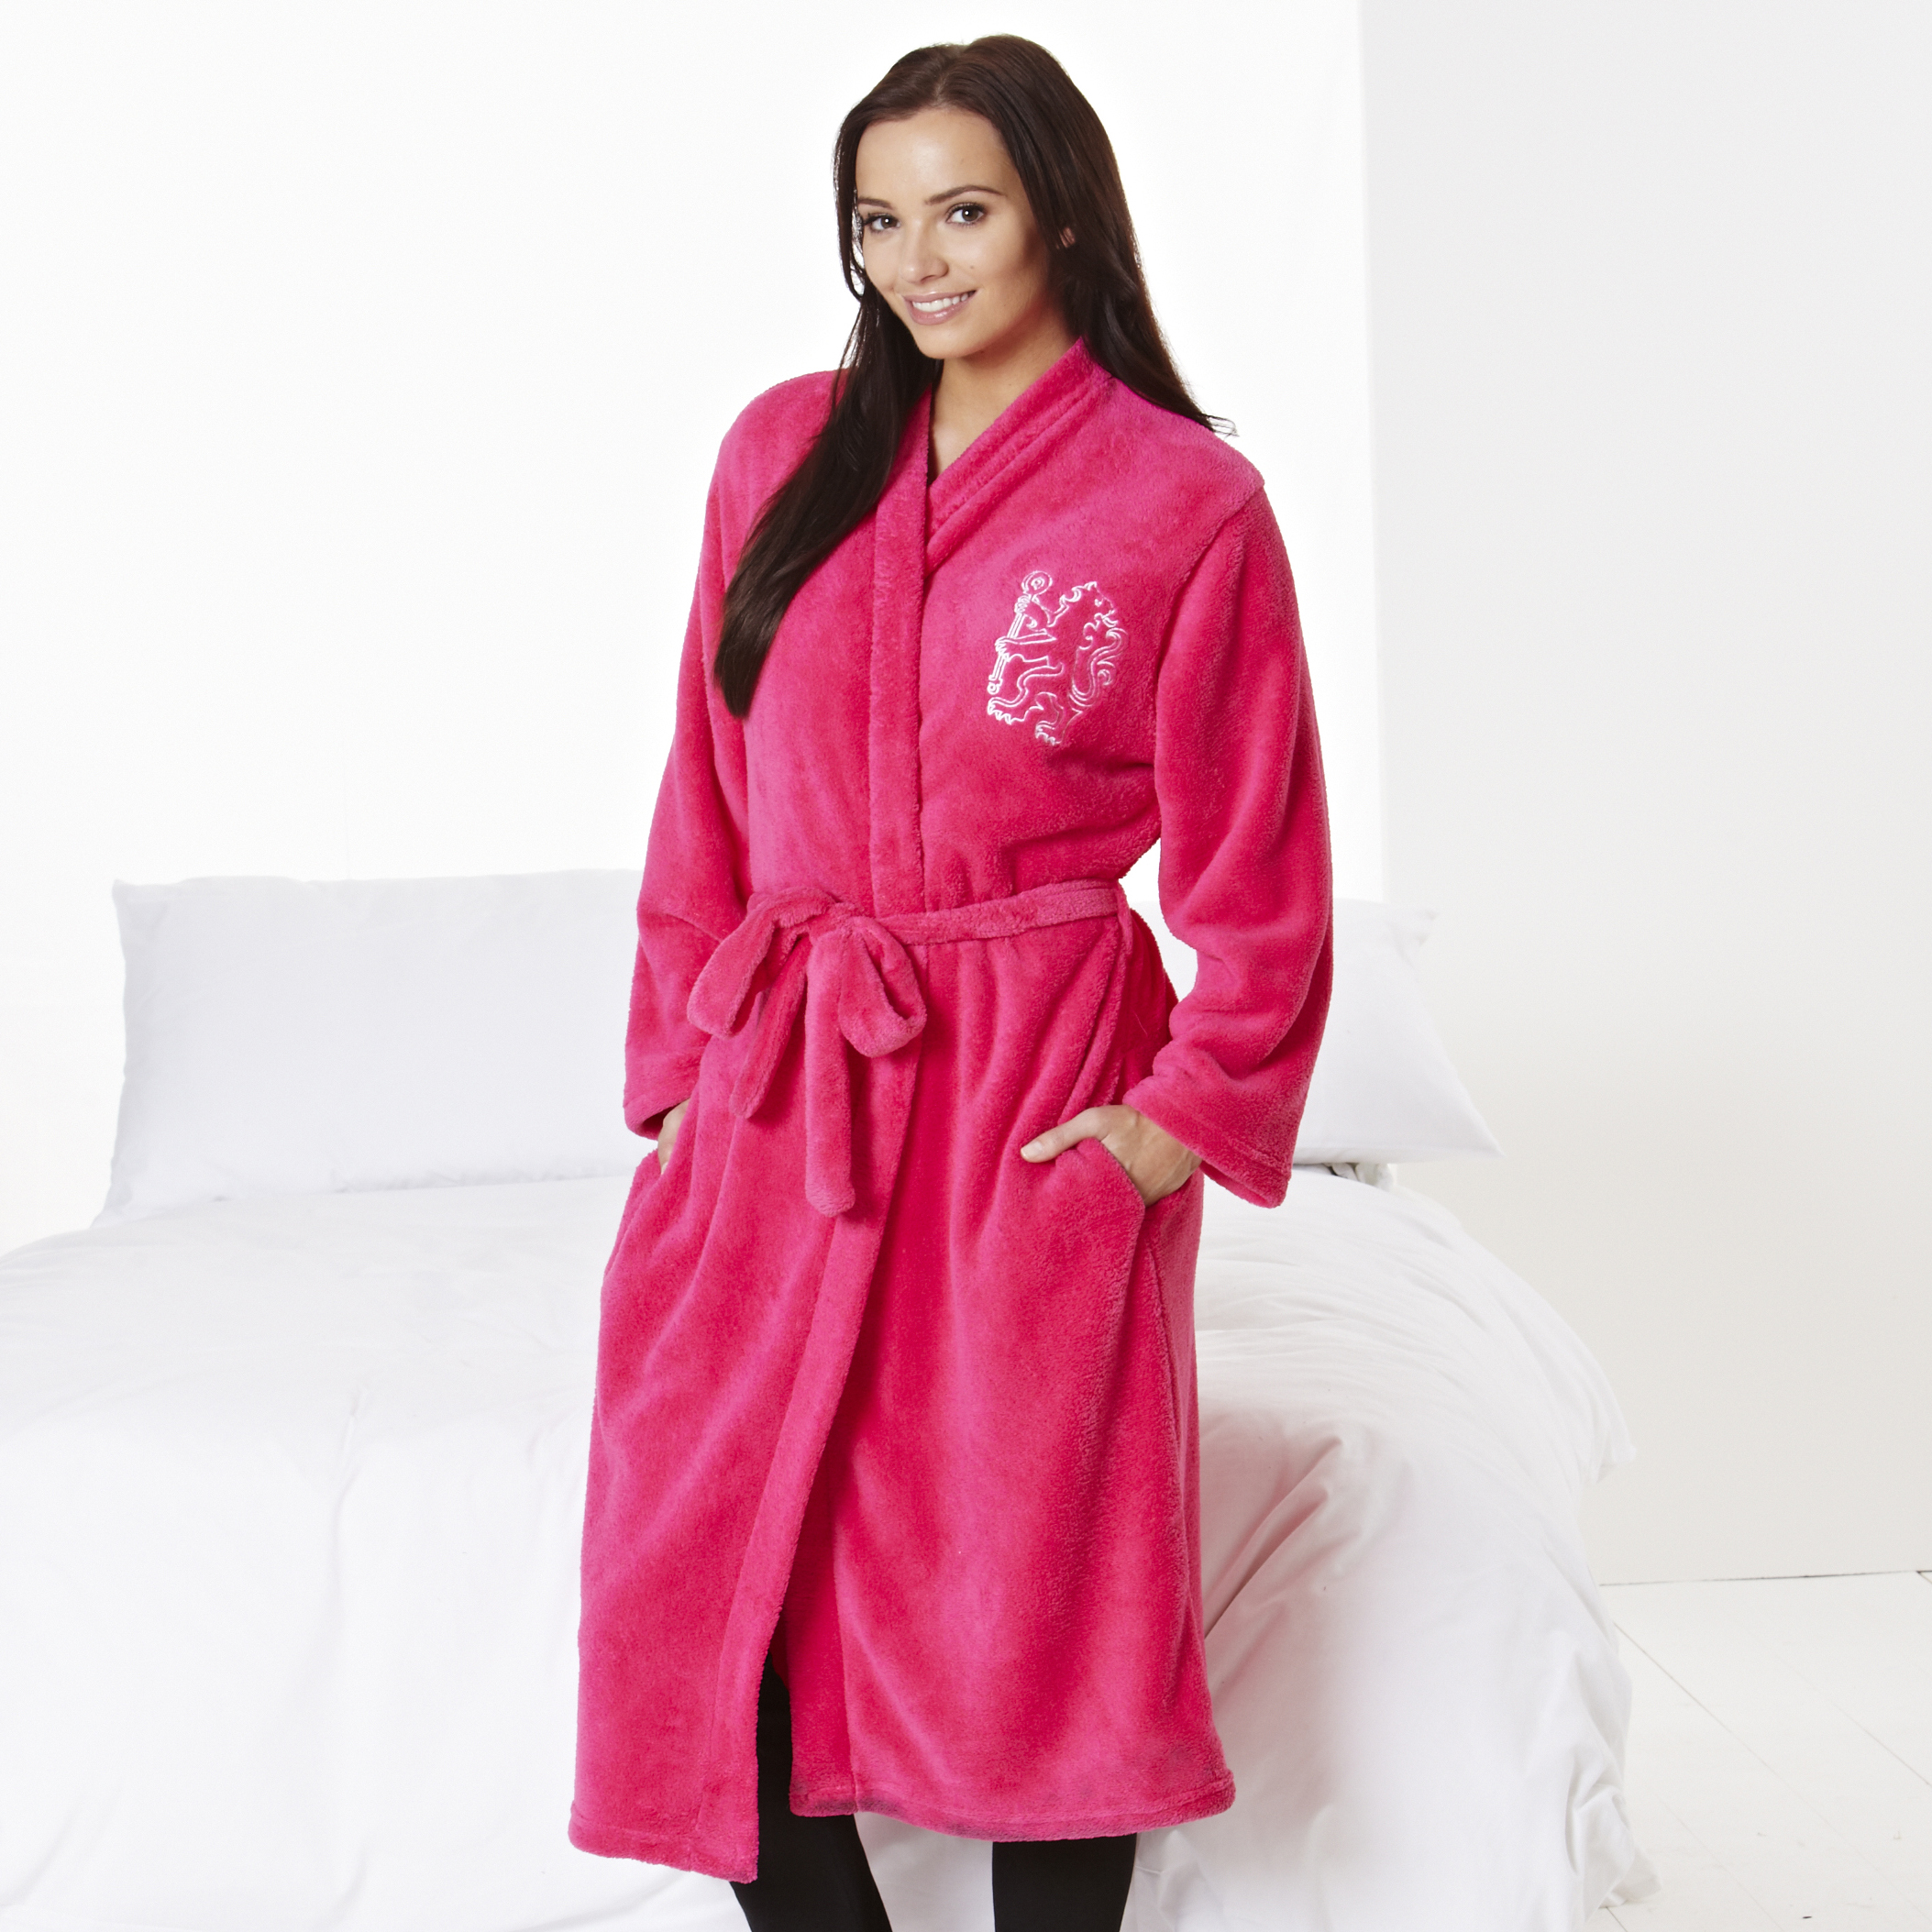 Chelsea Large Lion Robe - Cerise Pink - Womens